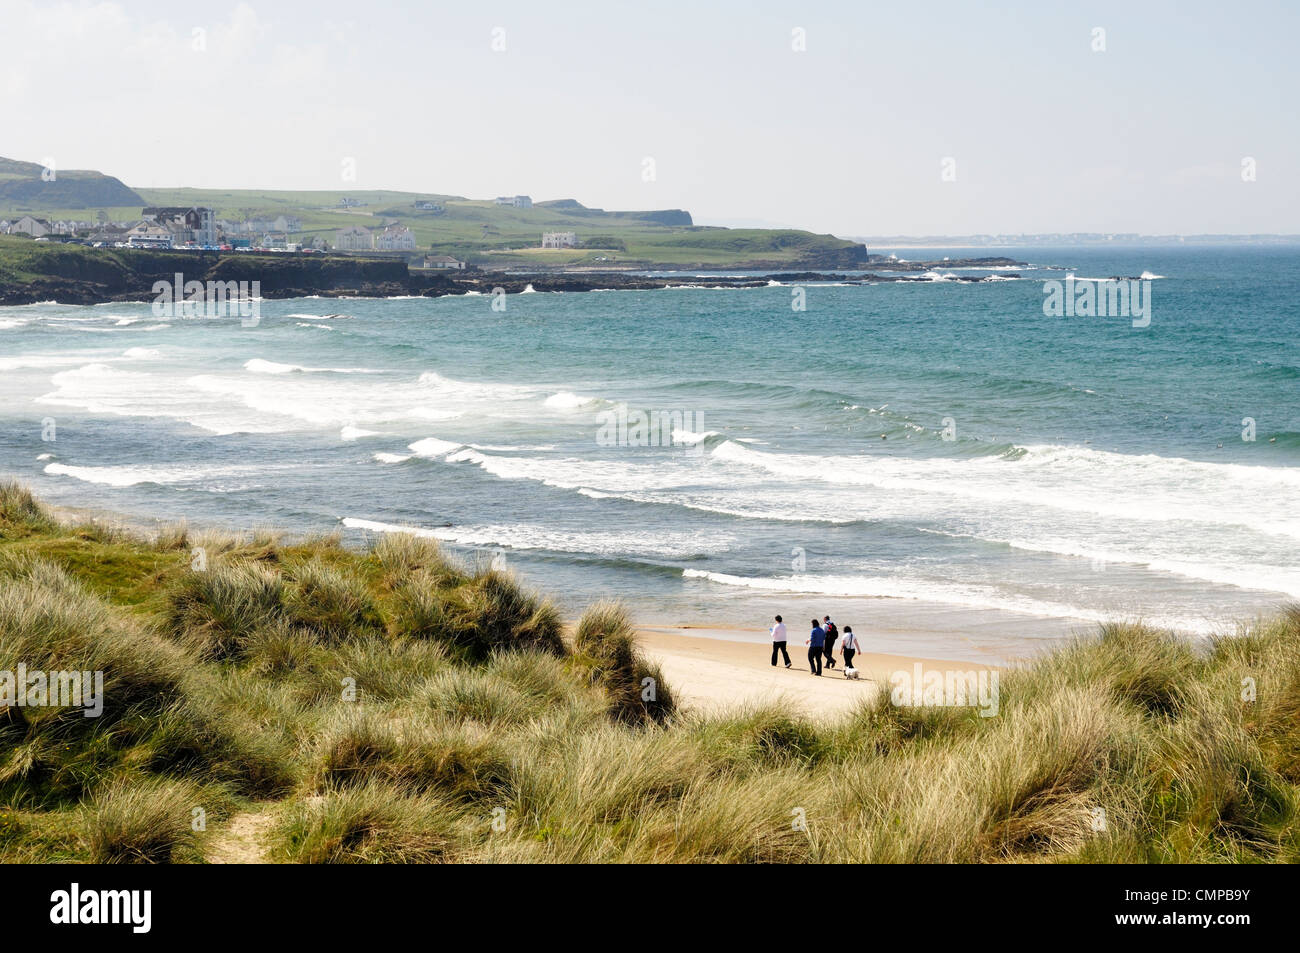 Southwest over beach of Runkerry Strand from Runkerry Trail, Portballintrae near Bushmills , County Antrim, Northern - Stock Image